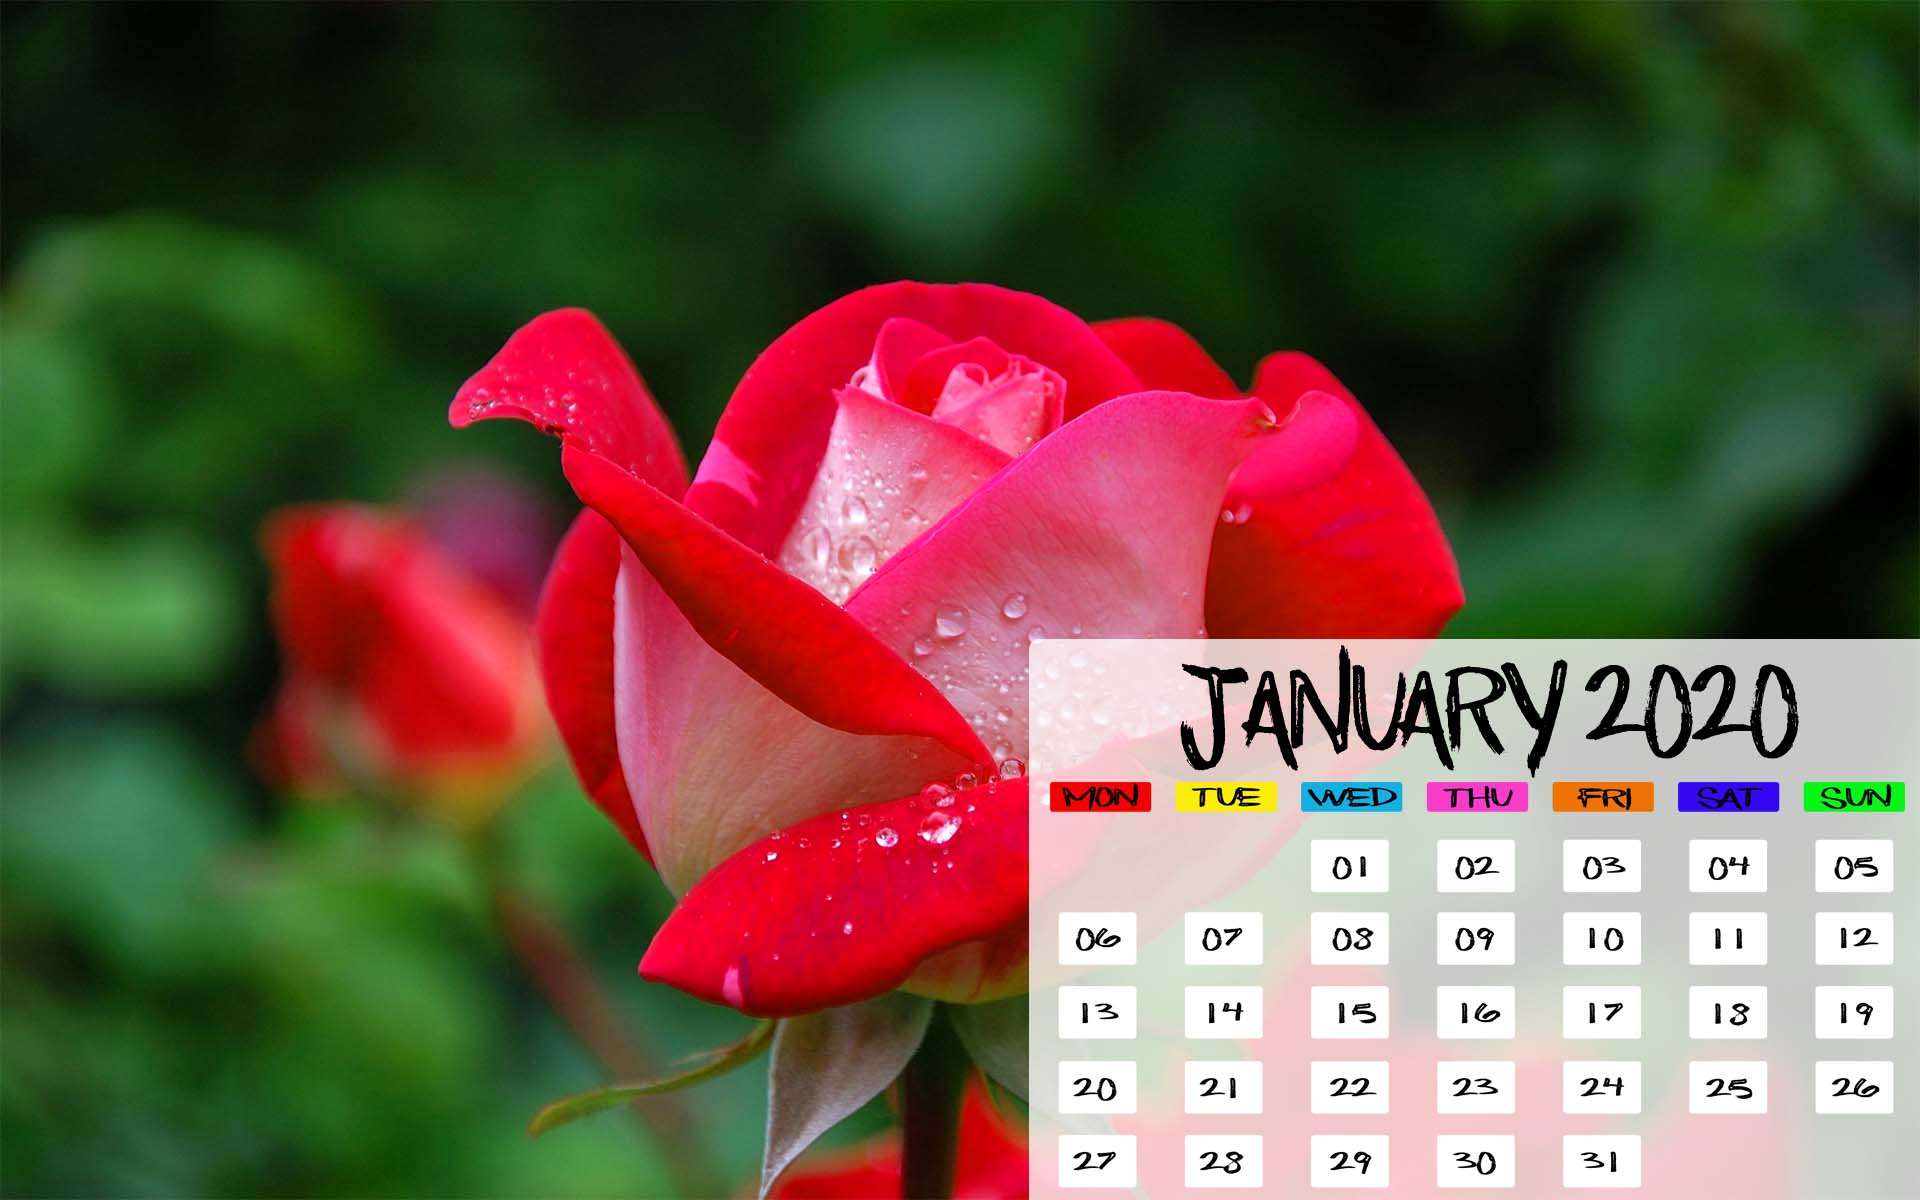 January 2020 Calendar iPhone Desktop Mobile Tablet Wallpapers 1920x1200